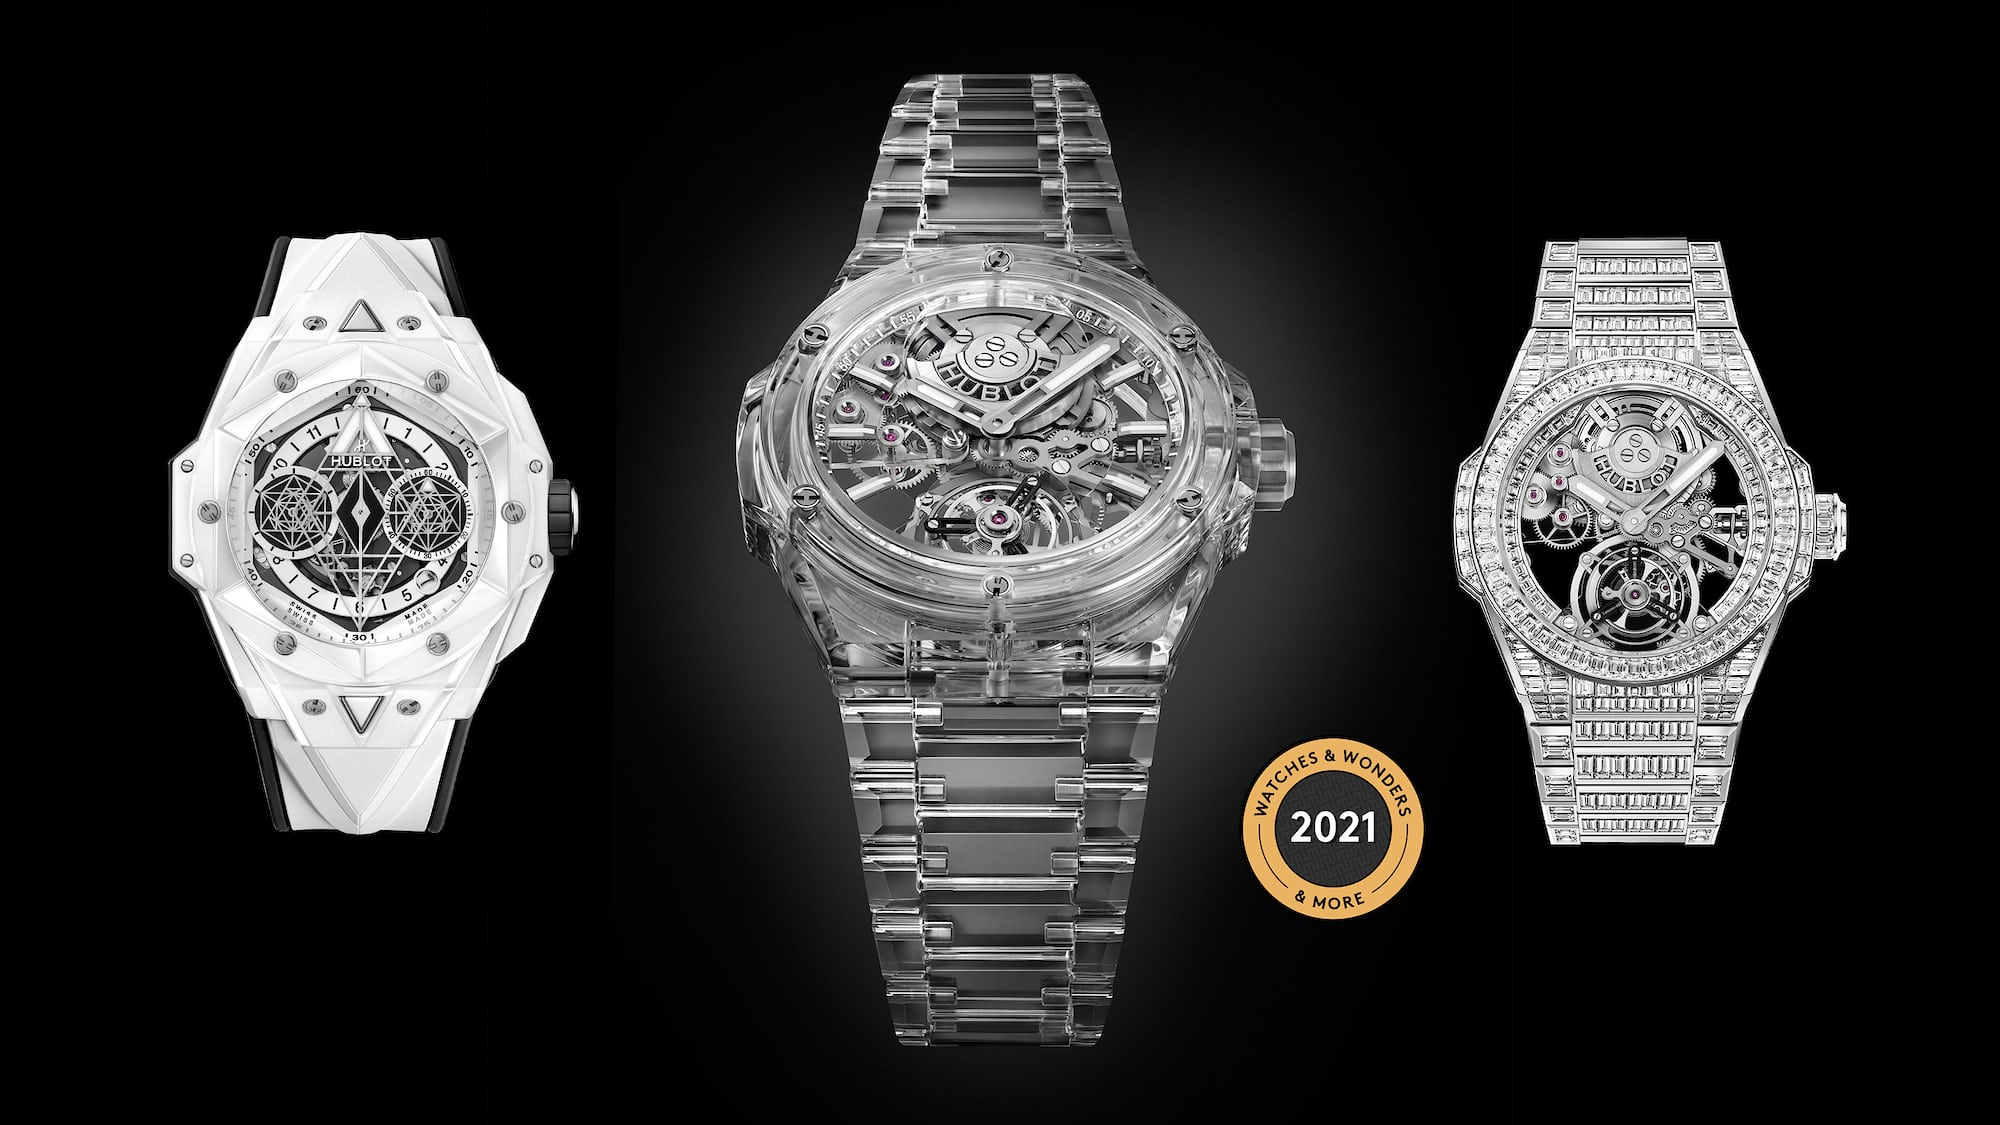 Introducing: All Of The Wild New Releases From Hublot